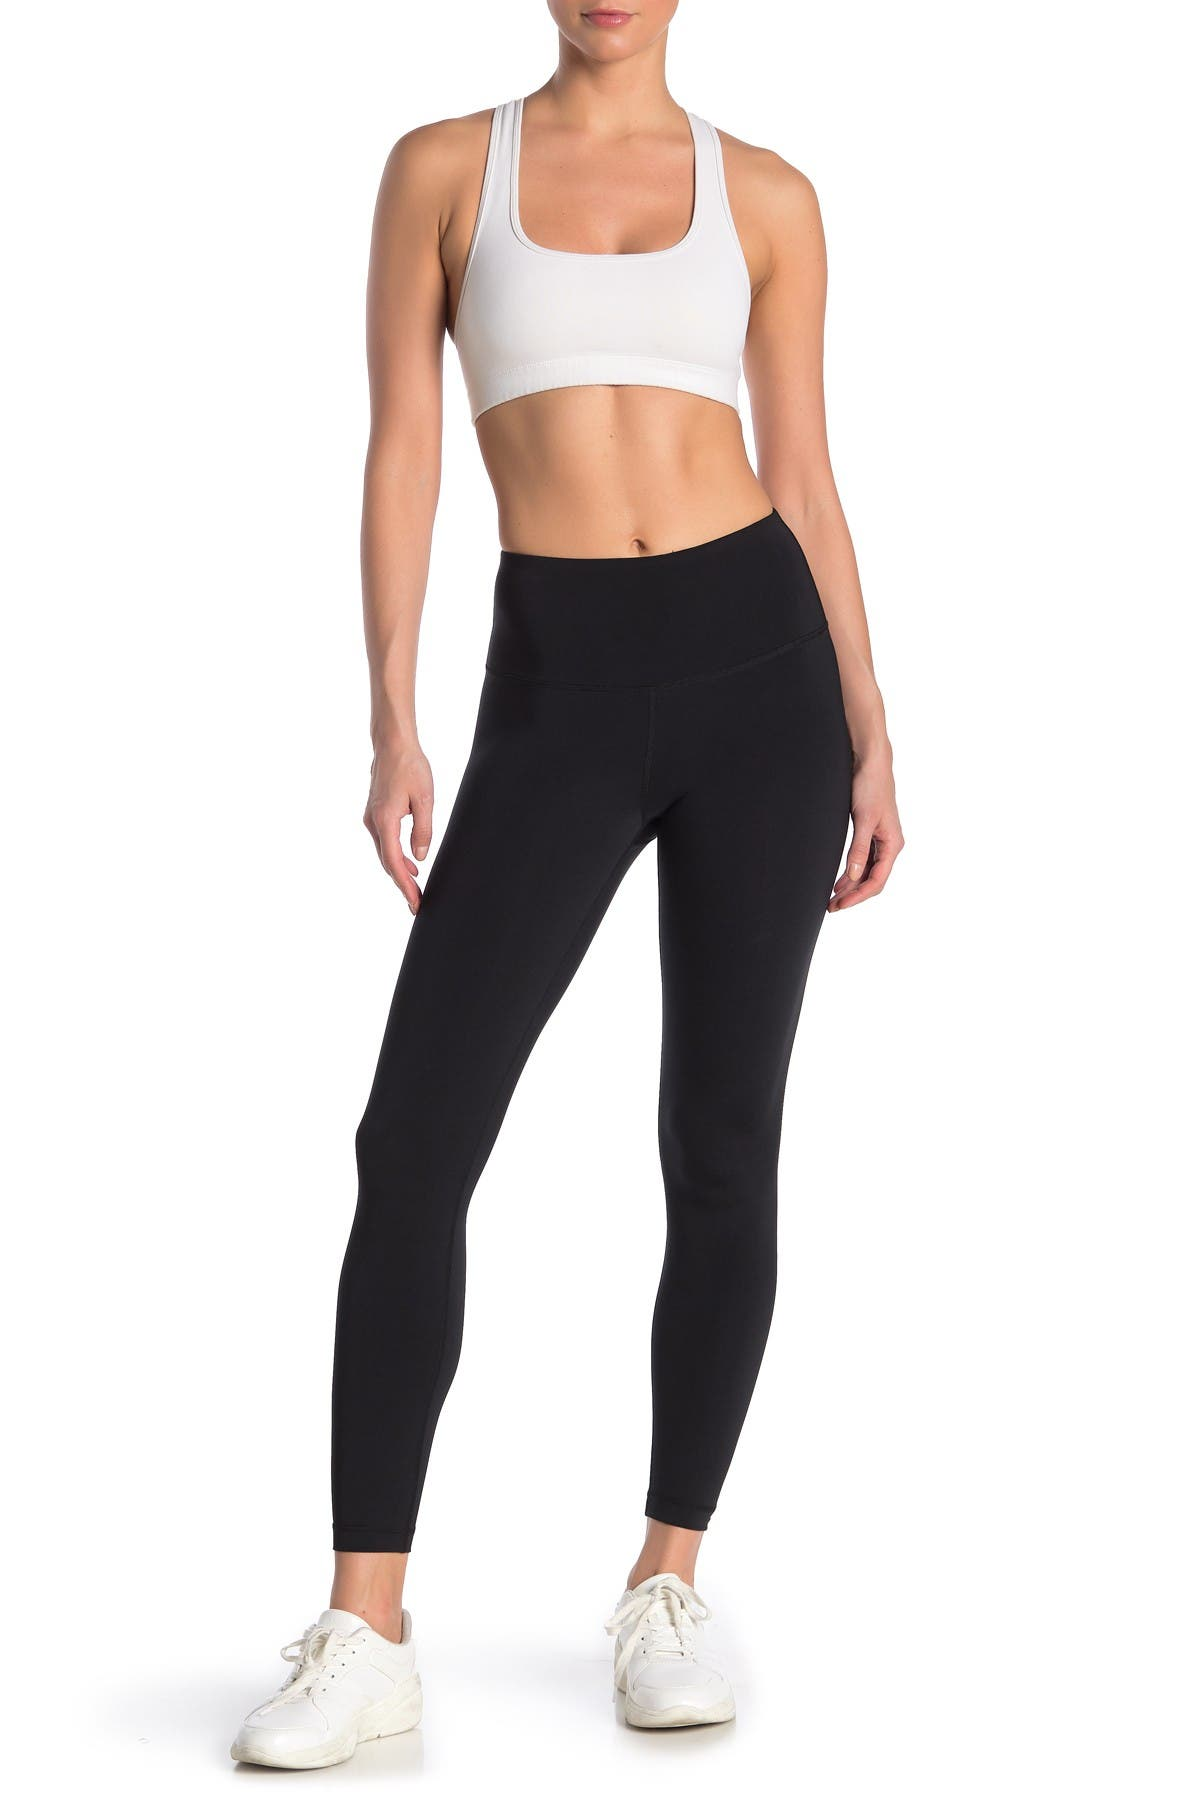 Image of 90 Degree By Reflex Missy Interlink High Waist Ankle Leggings